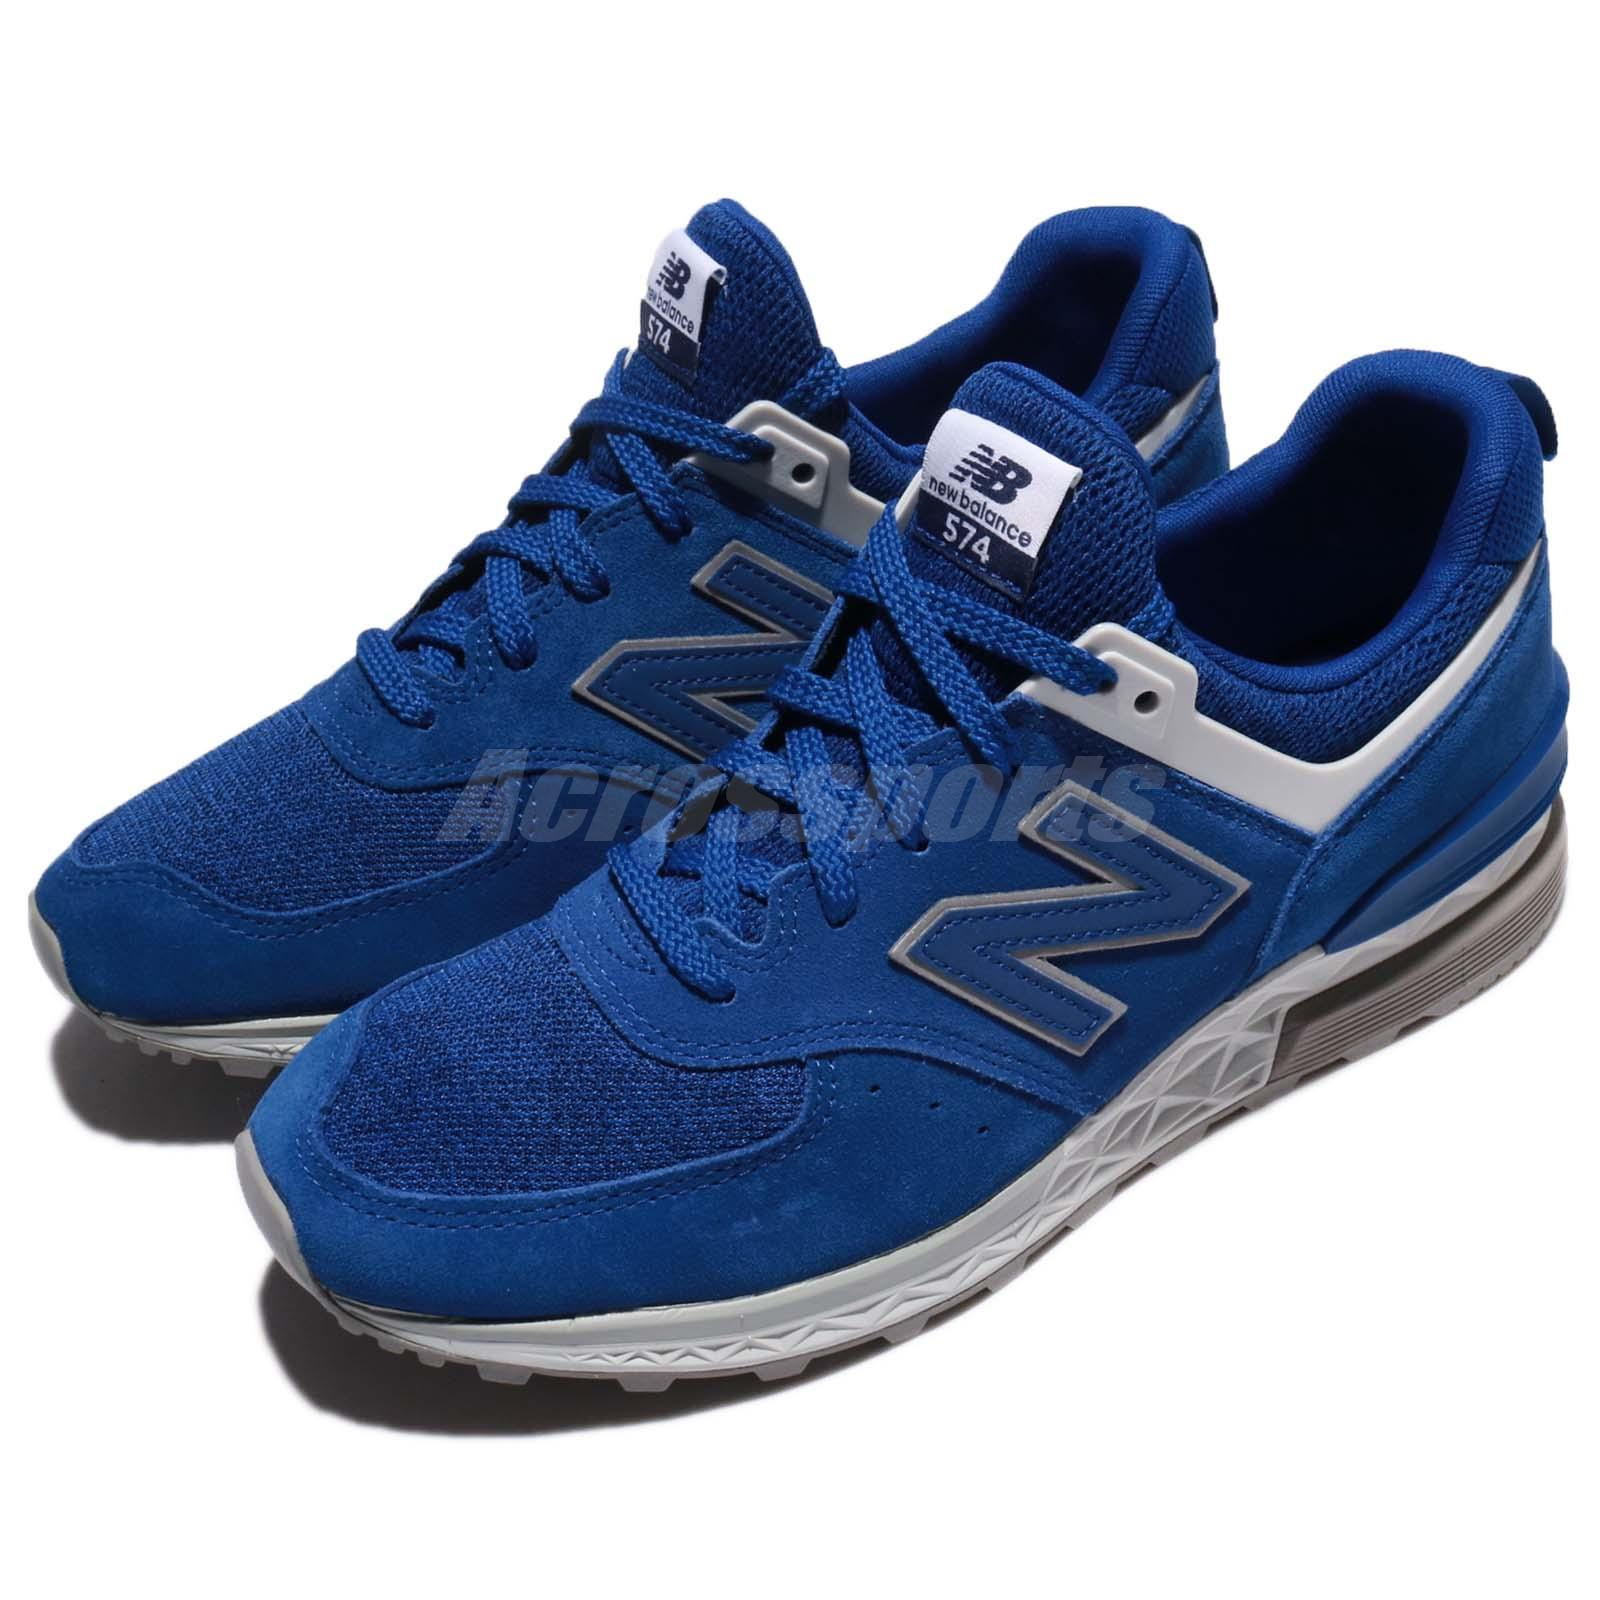 New Balance MS574CD D MS574 Suede Blue Grey Men Running Trainers ... e2d191446fa